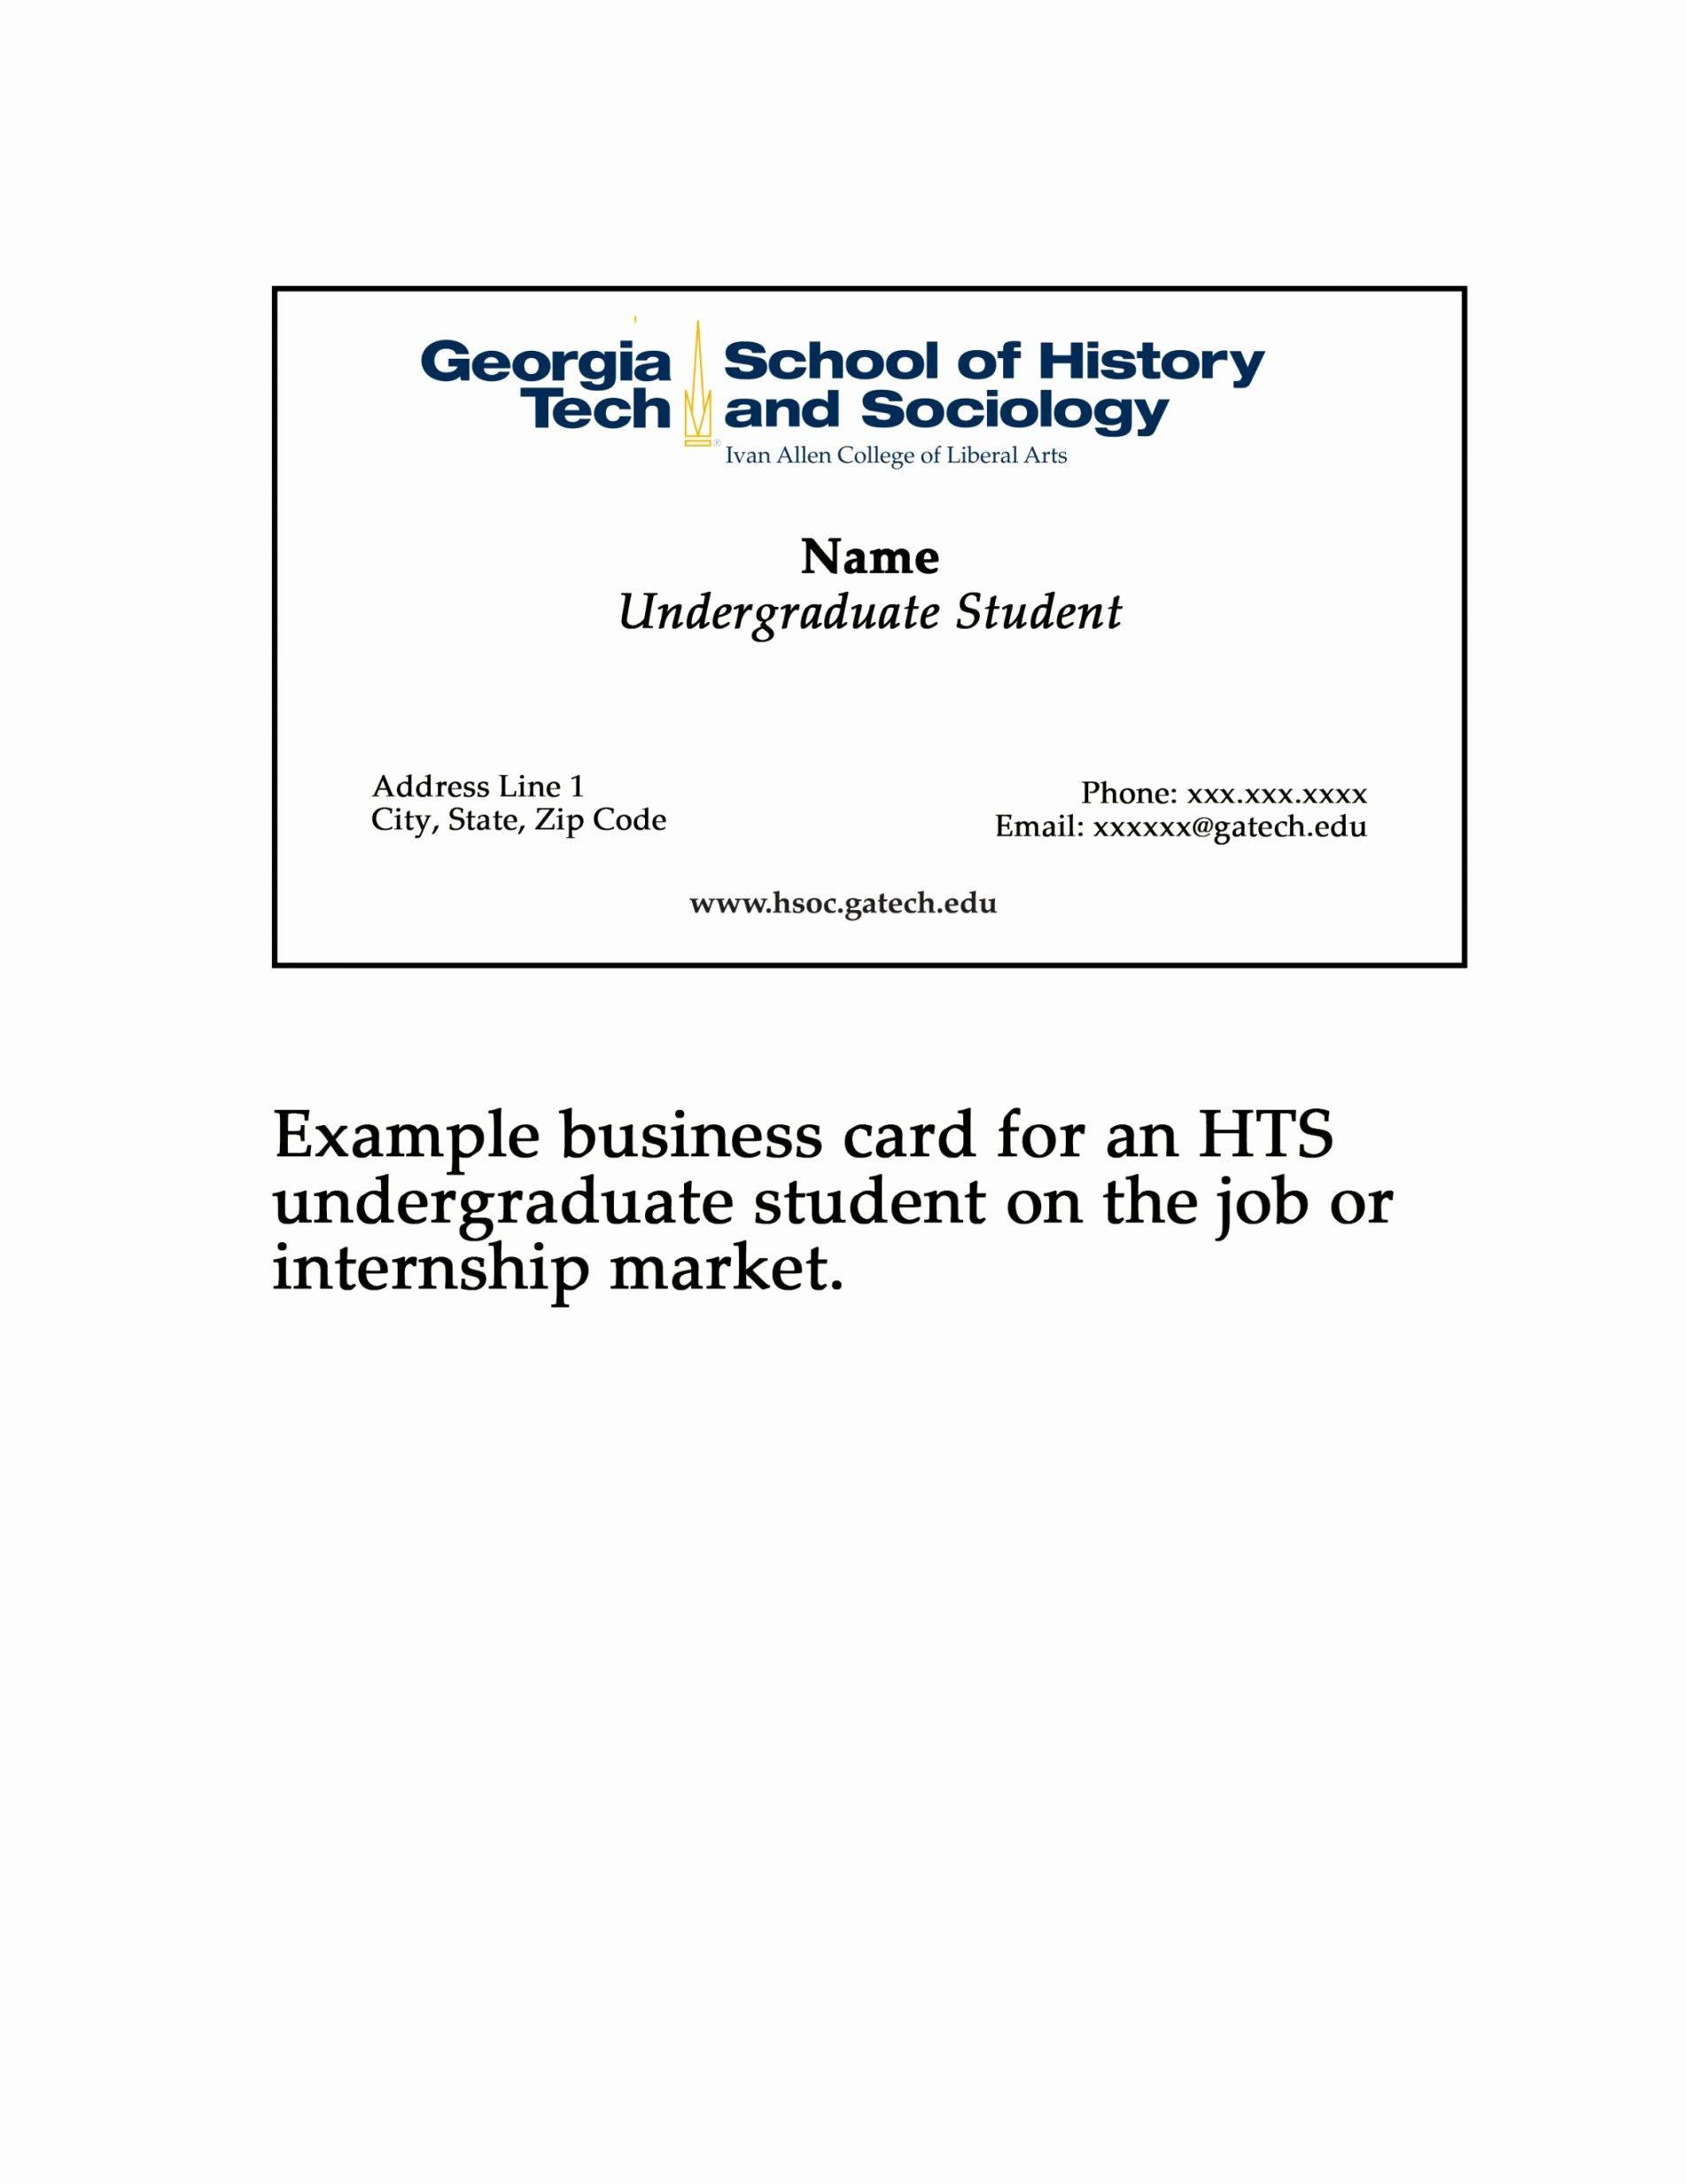 Student Business Card Template Best Of Phd Student Business Card New Template for Graduate